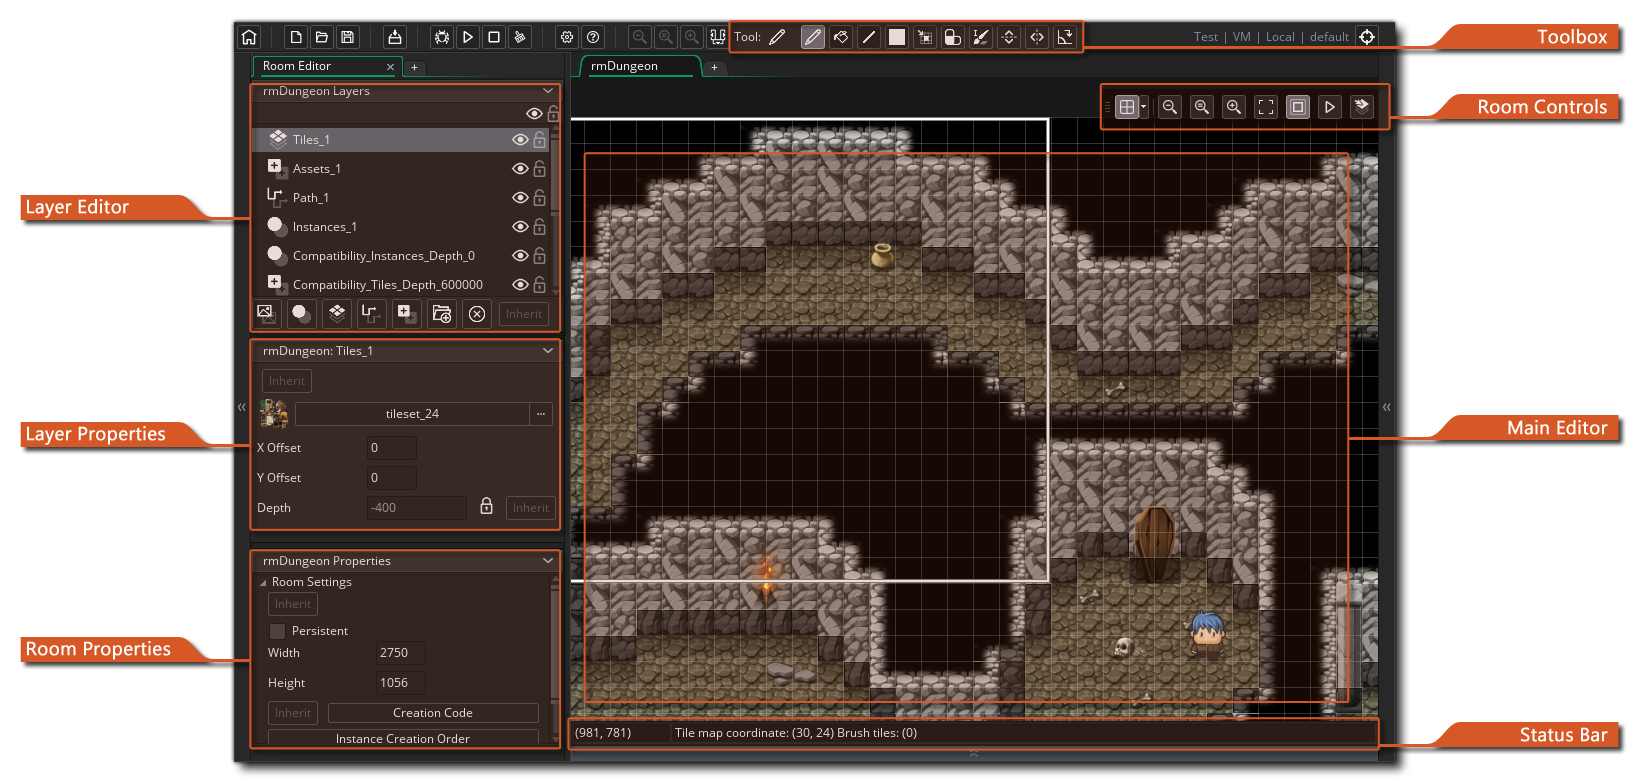 Tile drawing space. The room editor